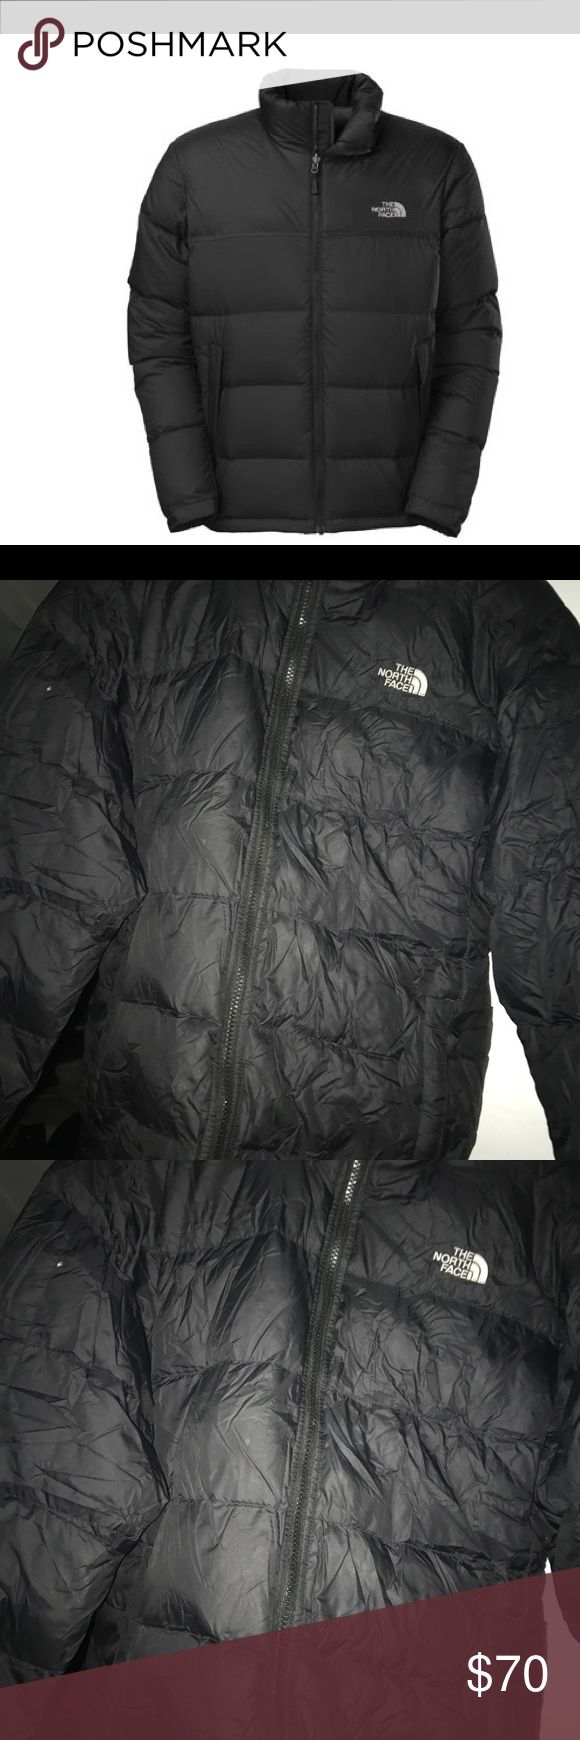 The North Face Nuptse Jacket New The North Face Jackets & Coats Puffers